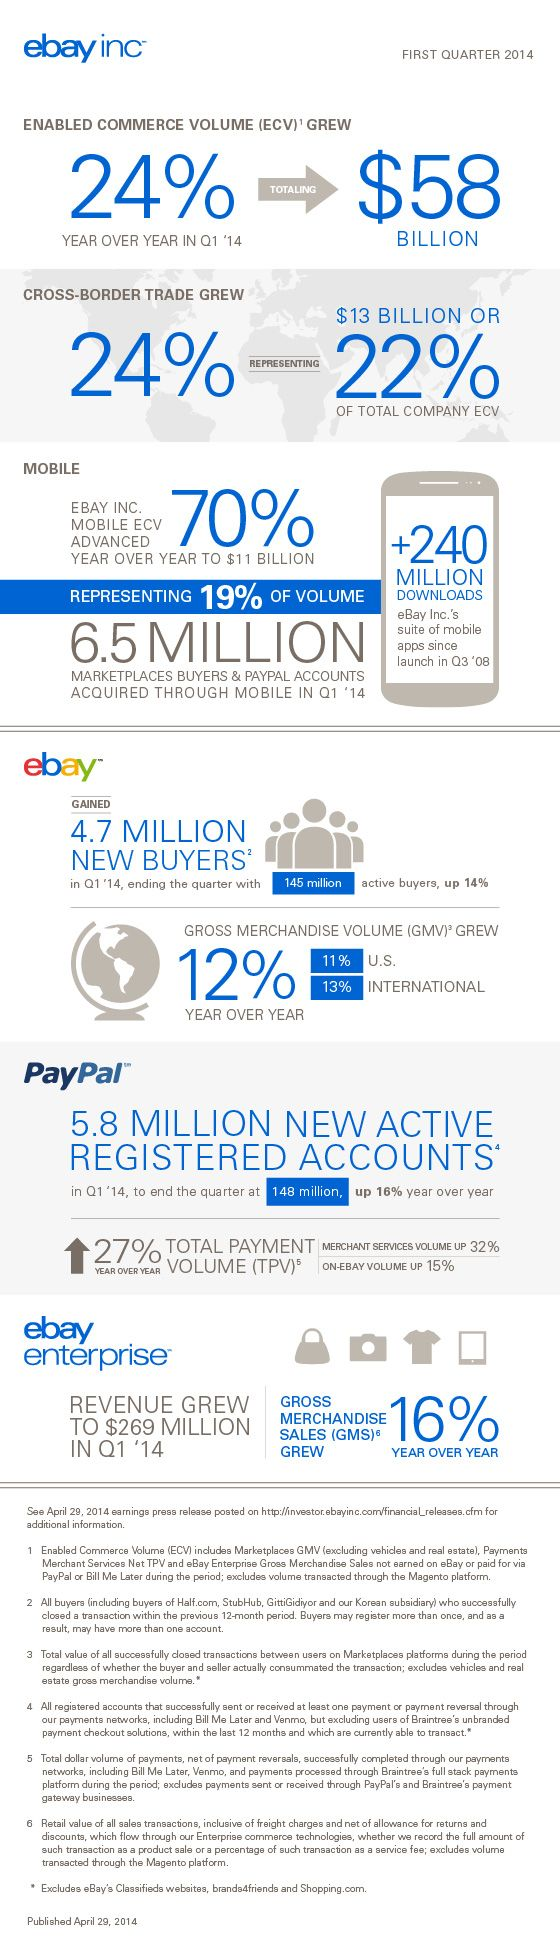 Infographic: Highlights from eBay Inc.'s Q1 Results   ebay inc